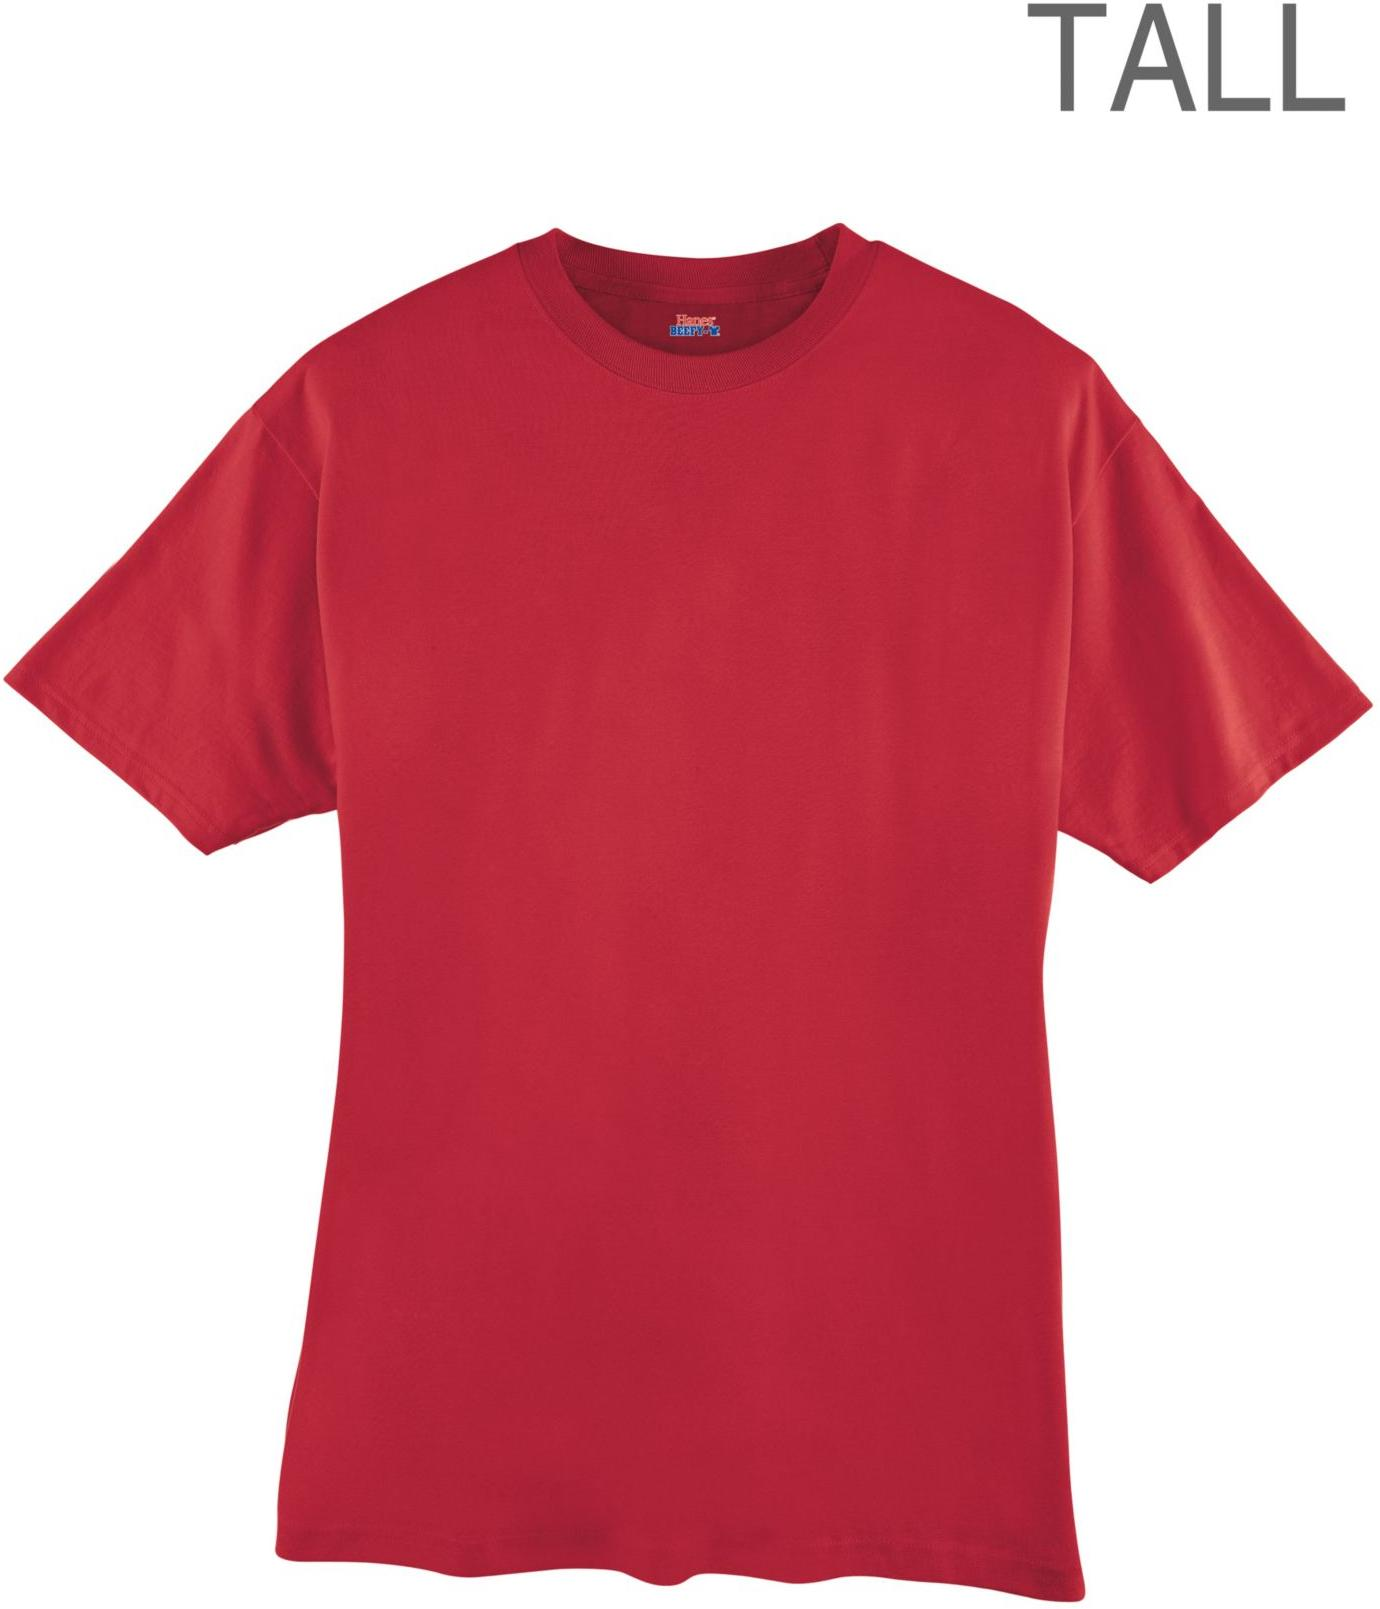 Hanes men 39 s beefy t tall t shirt 518t for Mens tall t shirts